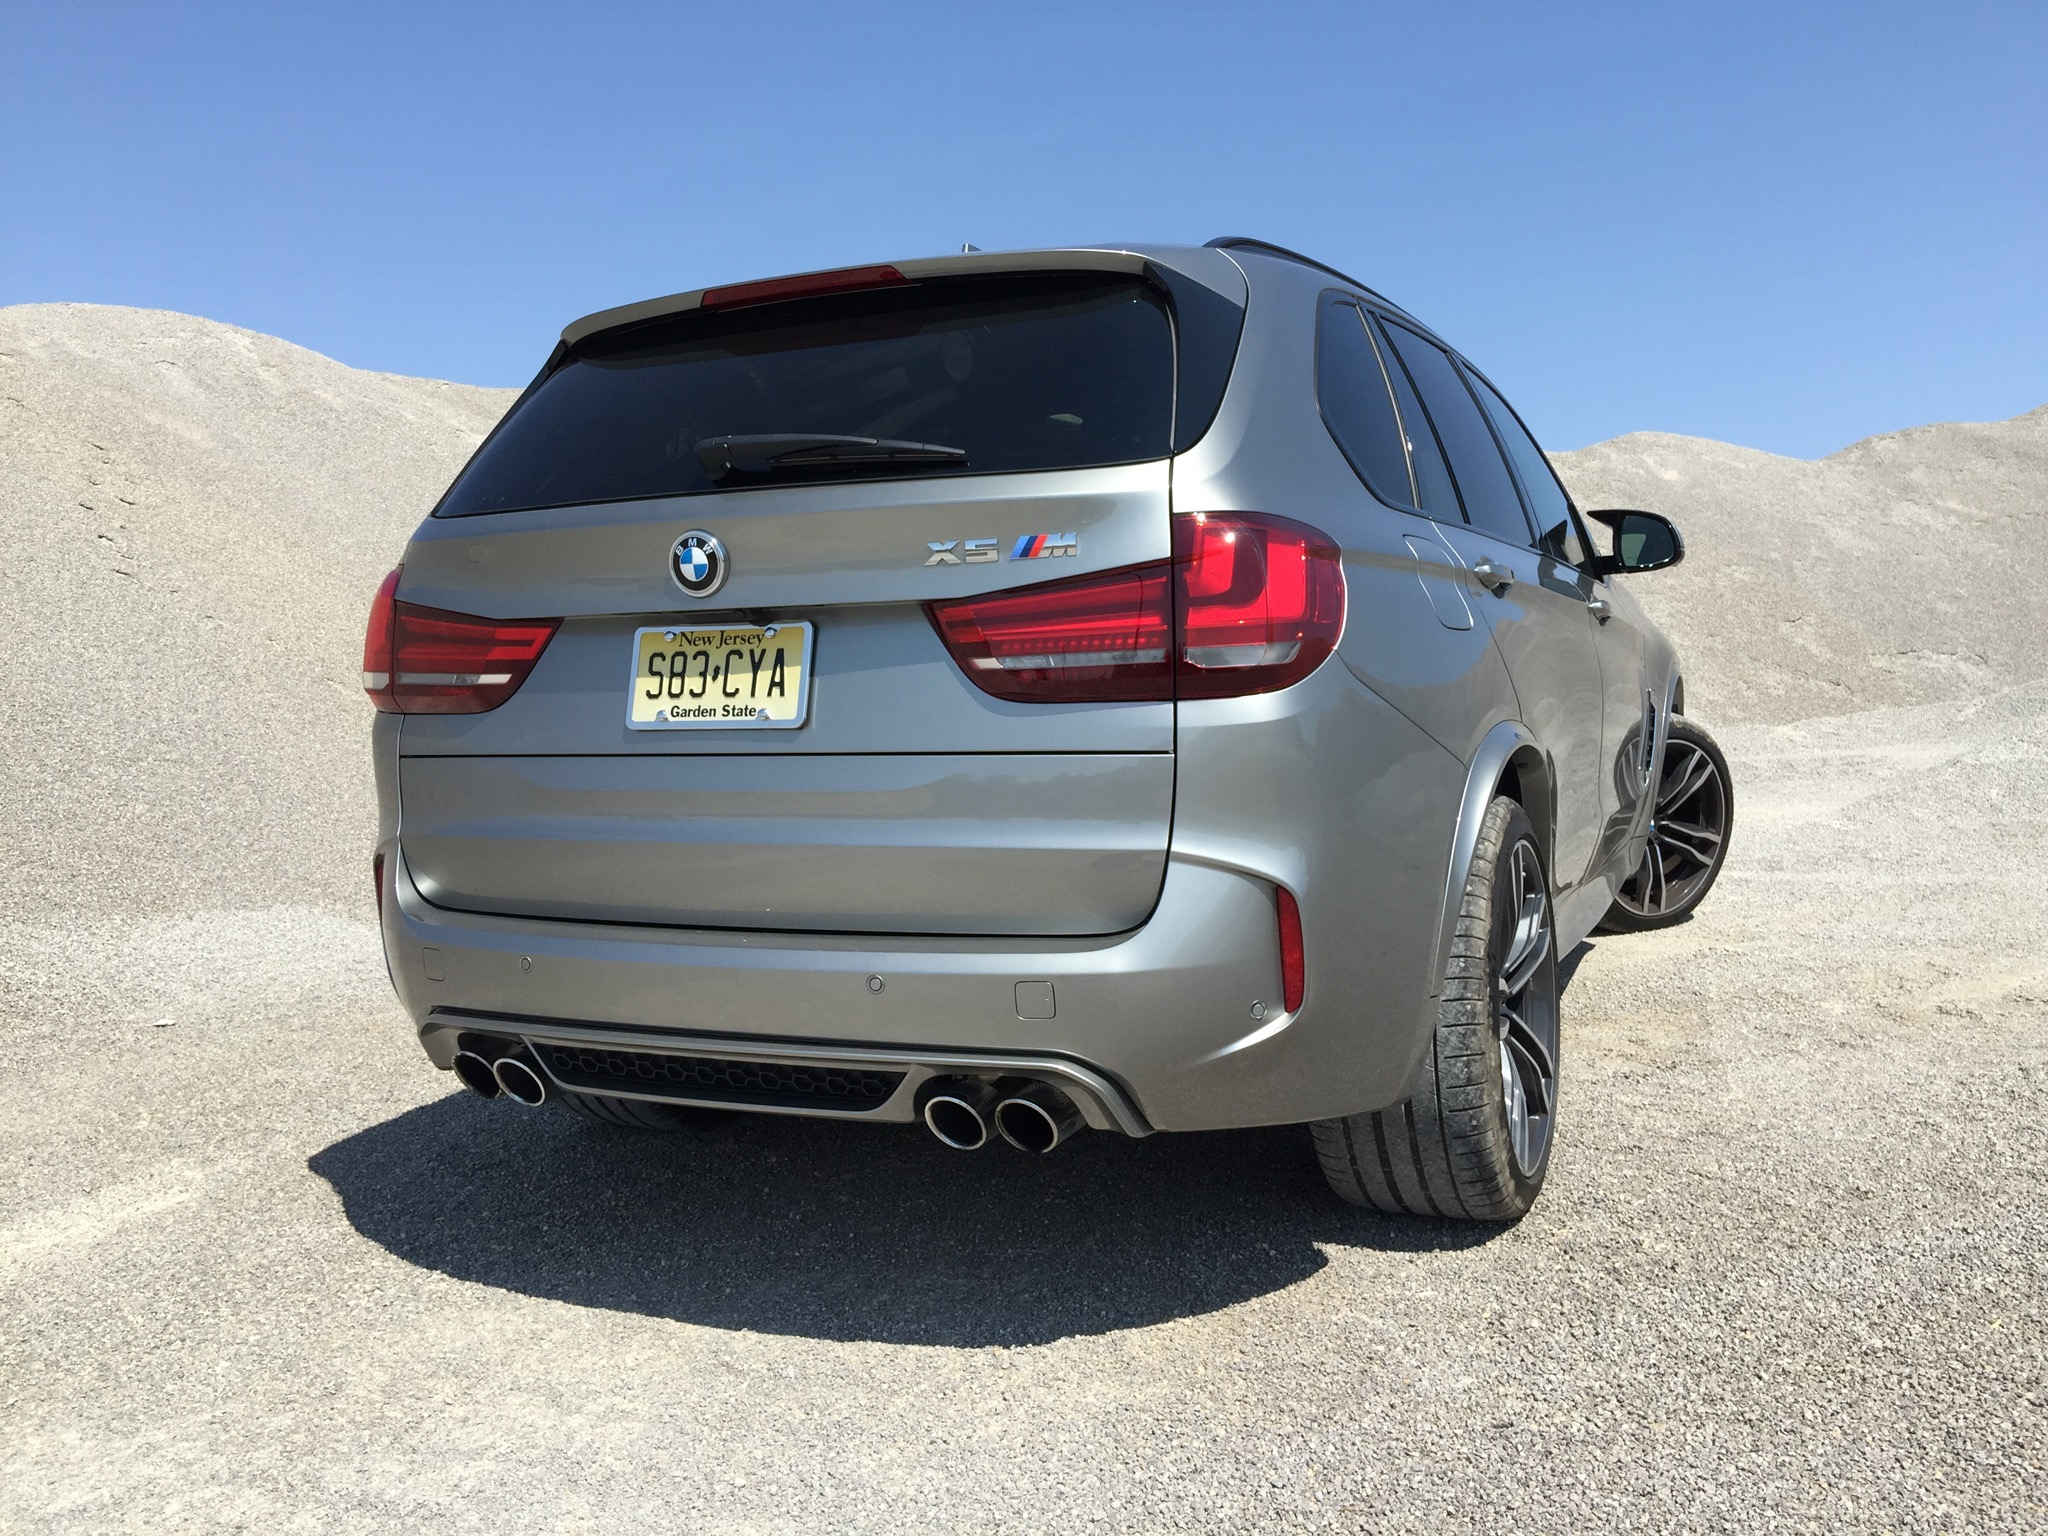 2016 bmw x5 m review photos caradvice. Black Bedroom Furniture Sets. Home Design Ideas